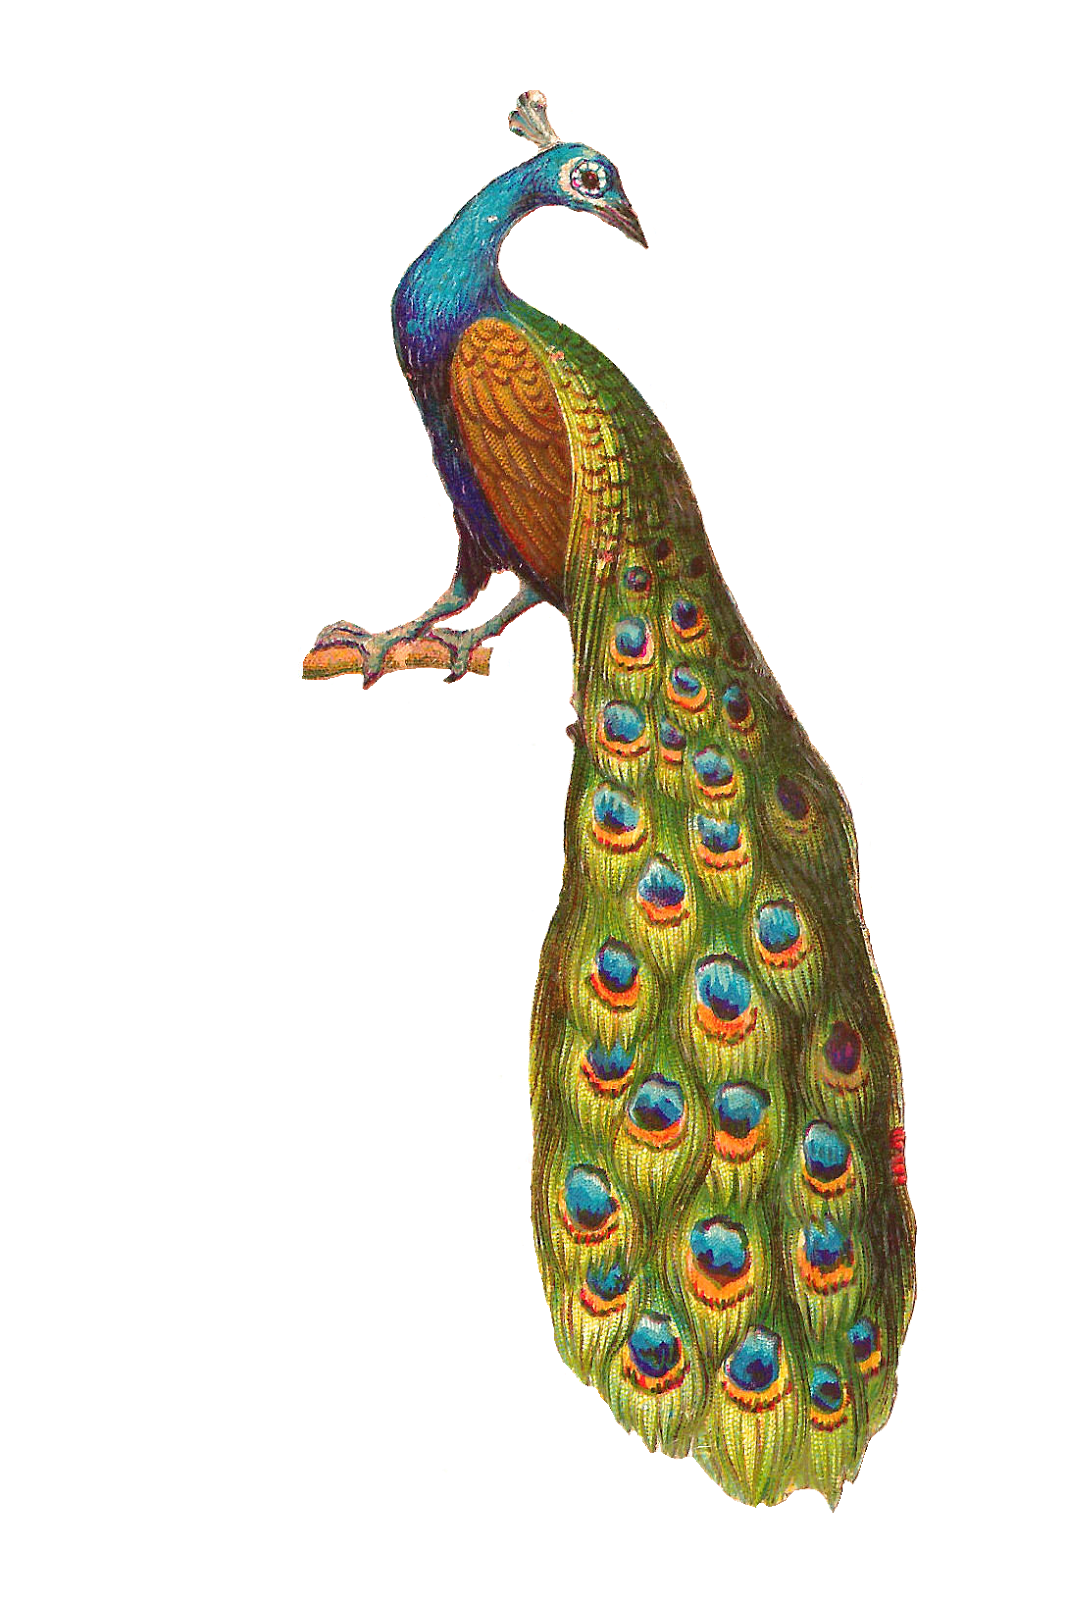 Peacock clipart vintage. Transparent png pictures free